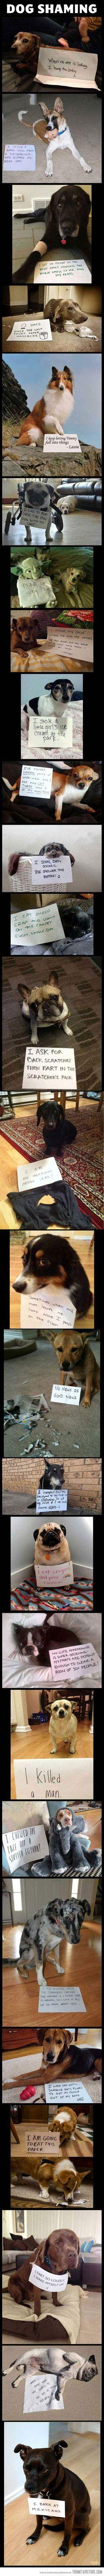 The 27 Naughtiest Dogs In The World (Hilarious Dog Shaming Gallery): Car, Dog Shame, Dogs, Dog Shaming, Bad Dog, Naughtiest Dog, Funny Animal